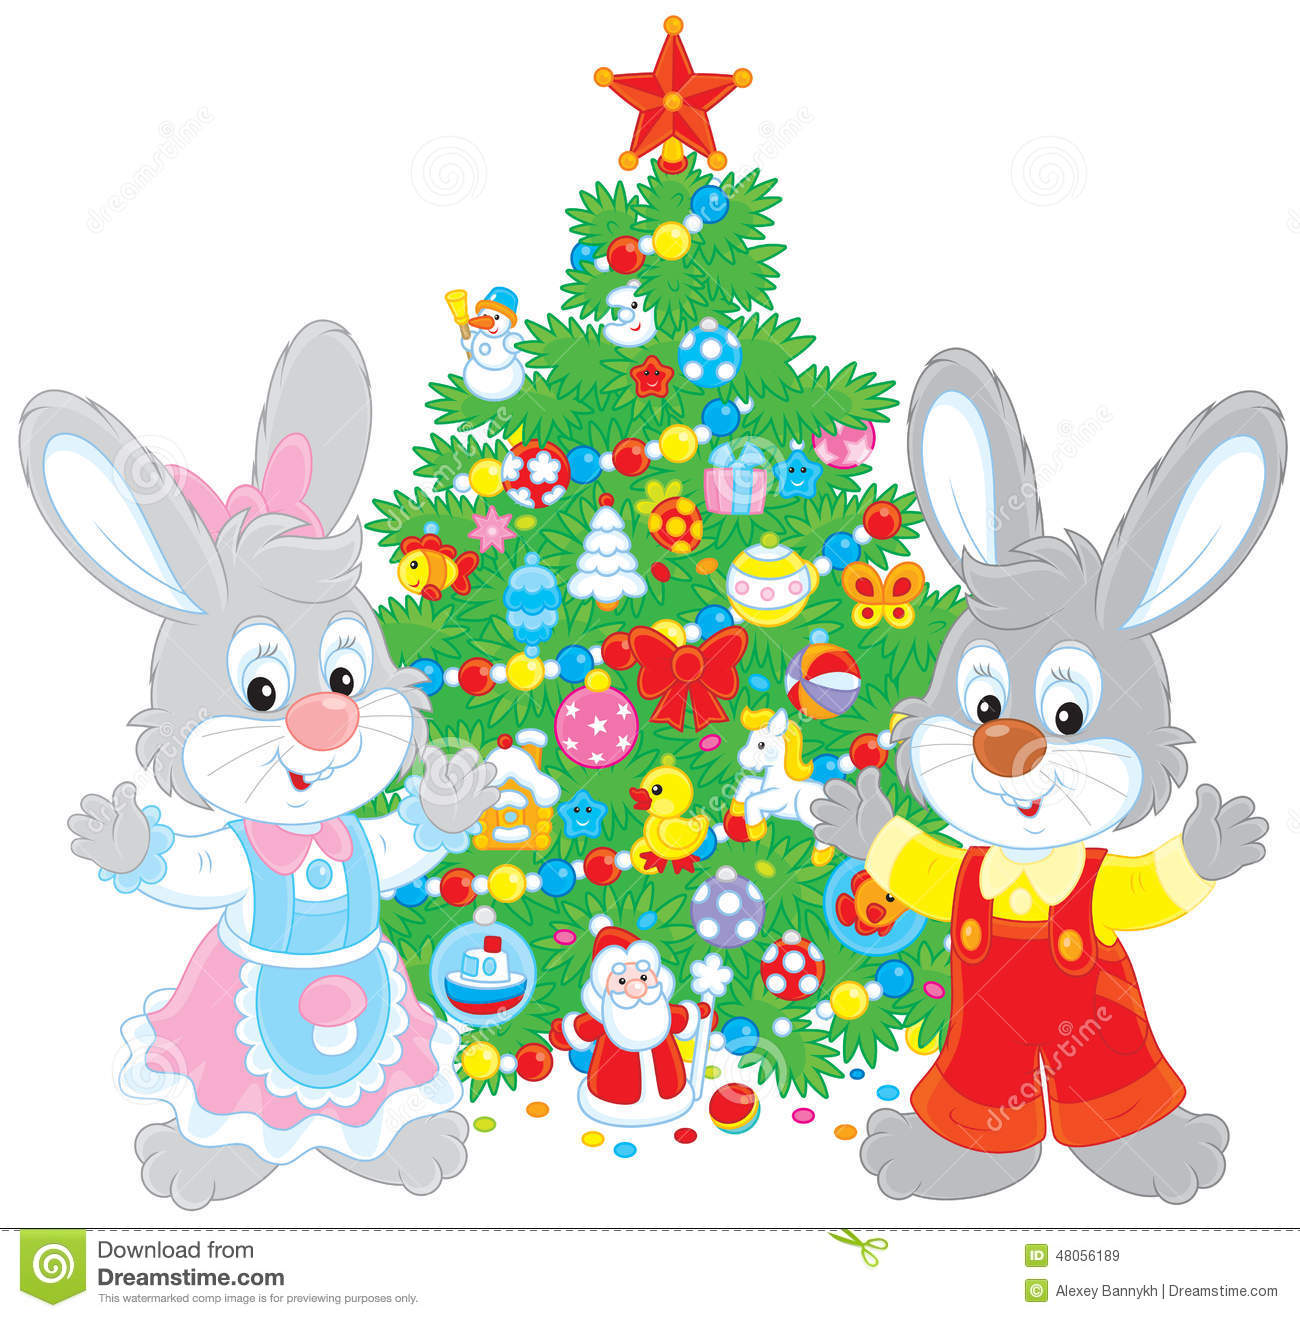 download rabbits and christmas tree stock vector illustration of celebrating 48056189